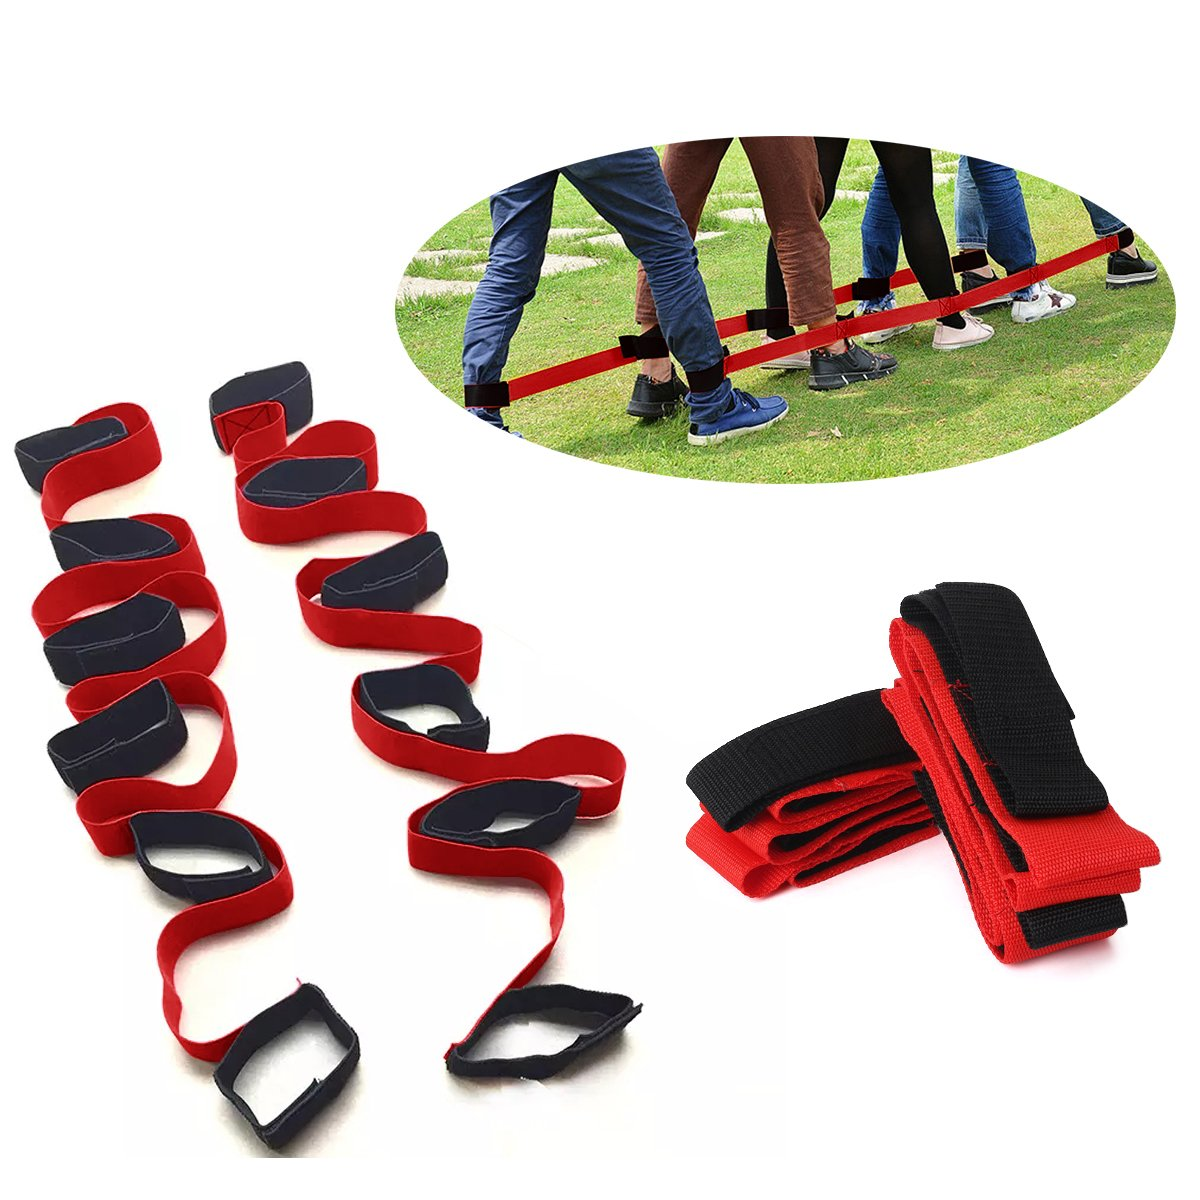 5 Legged Race Bands, 2 Pcs for Team Game Outdoor- Group Games - BBQ Party Game, Family Party Game Kids/Adults by PAMISO